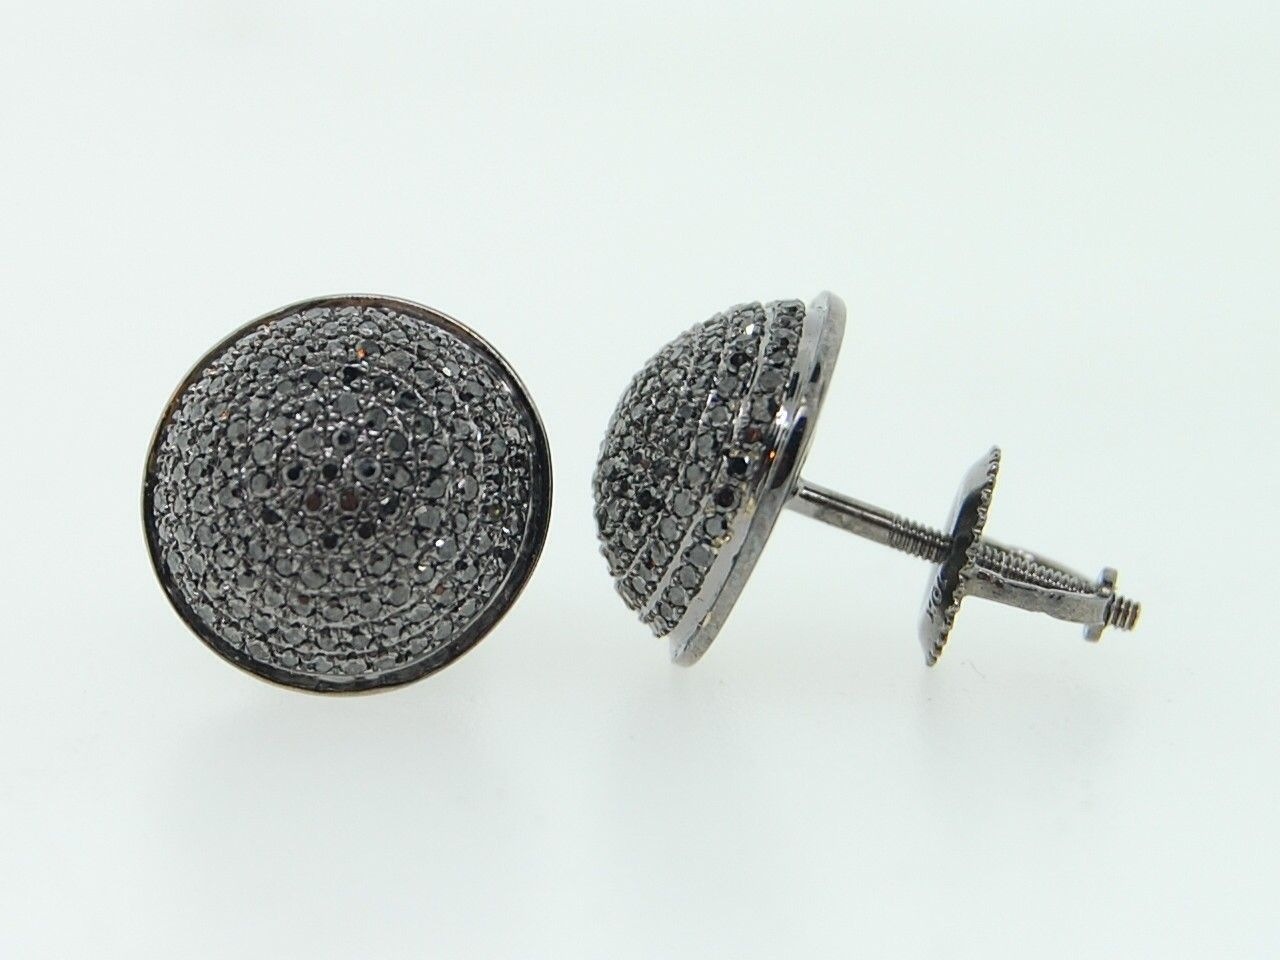 Diamond Stud Earrings For Men Hd Real Black Diamond Earrings